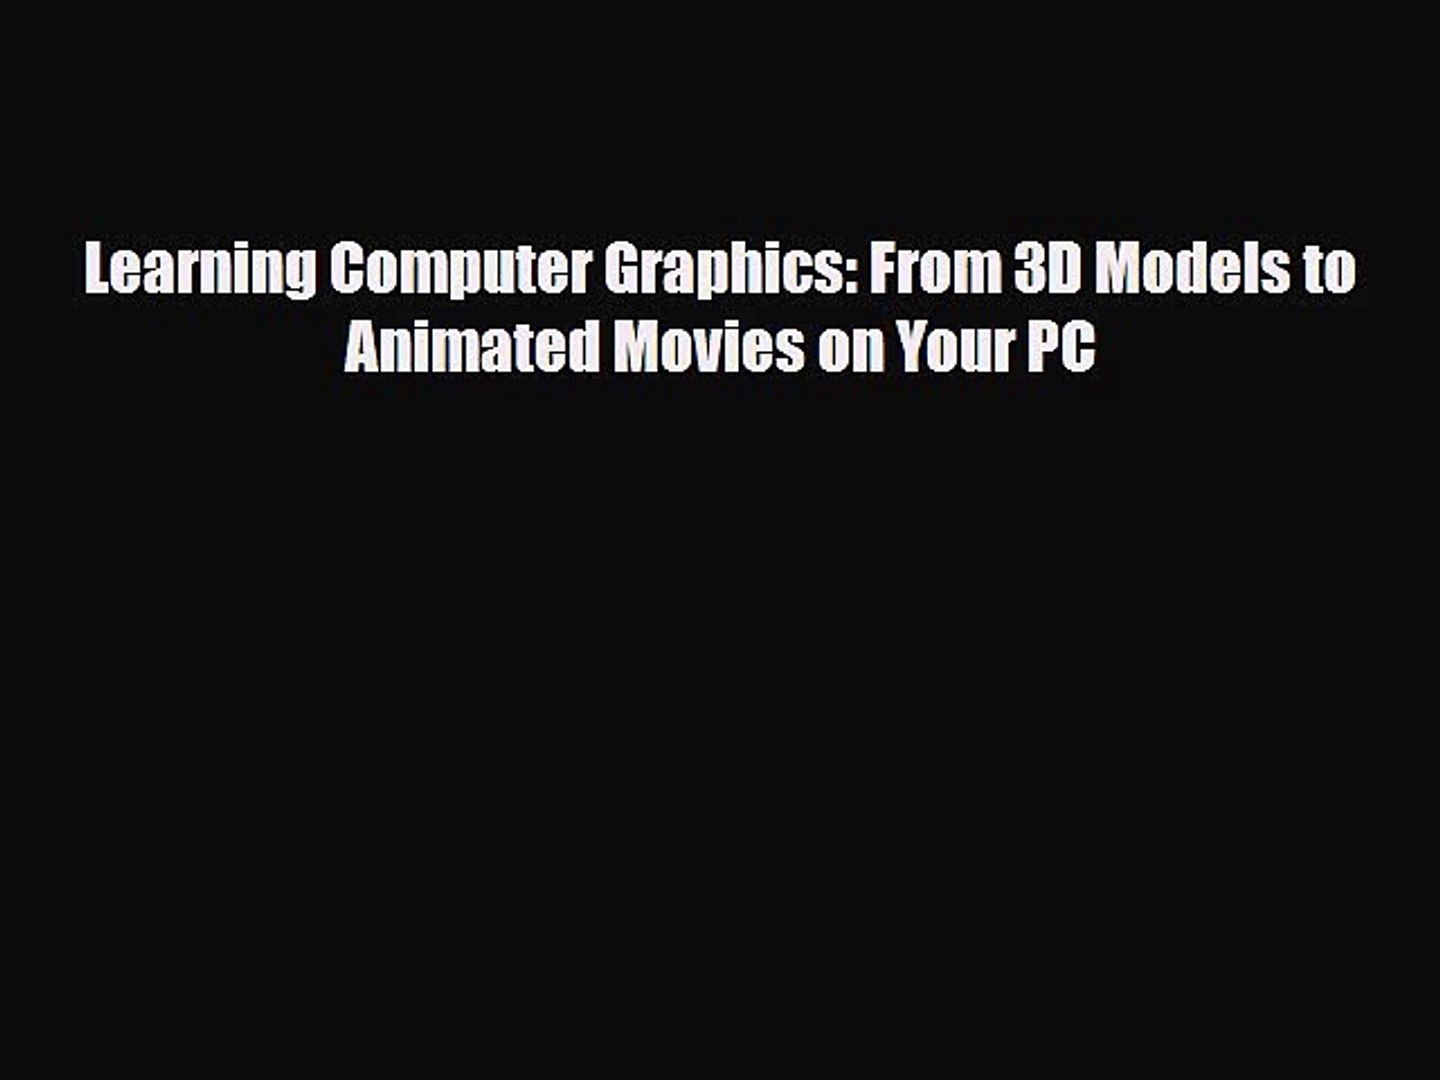 [PDF Download] Learning Computer Graphics: From 3D Models to Animated Movies on Your PC [Download]